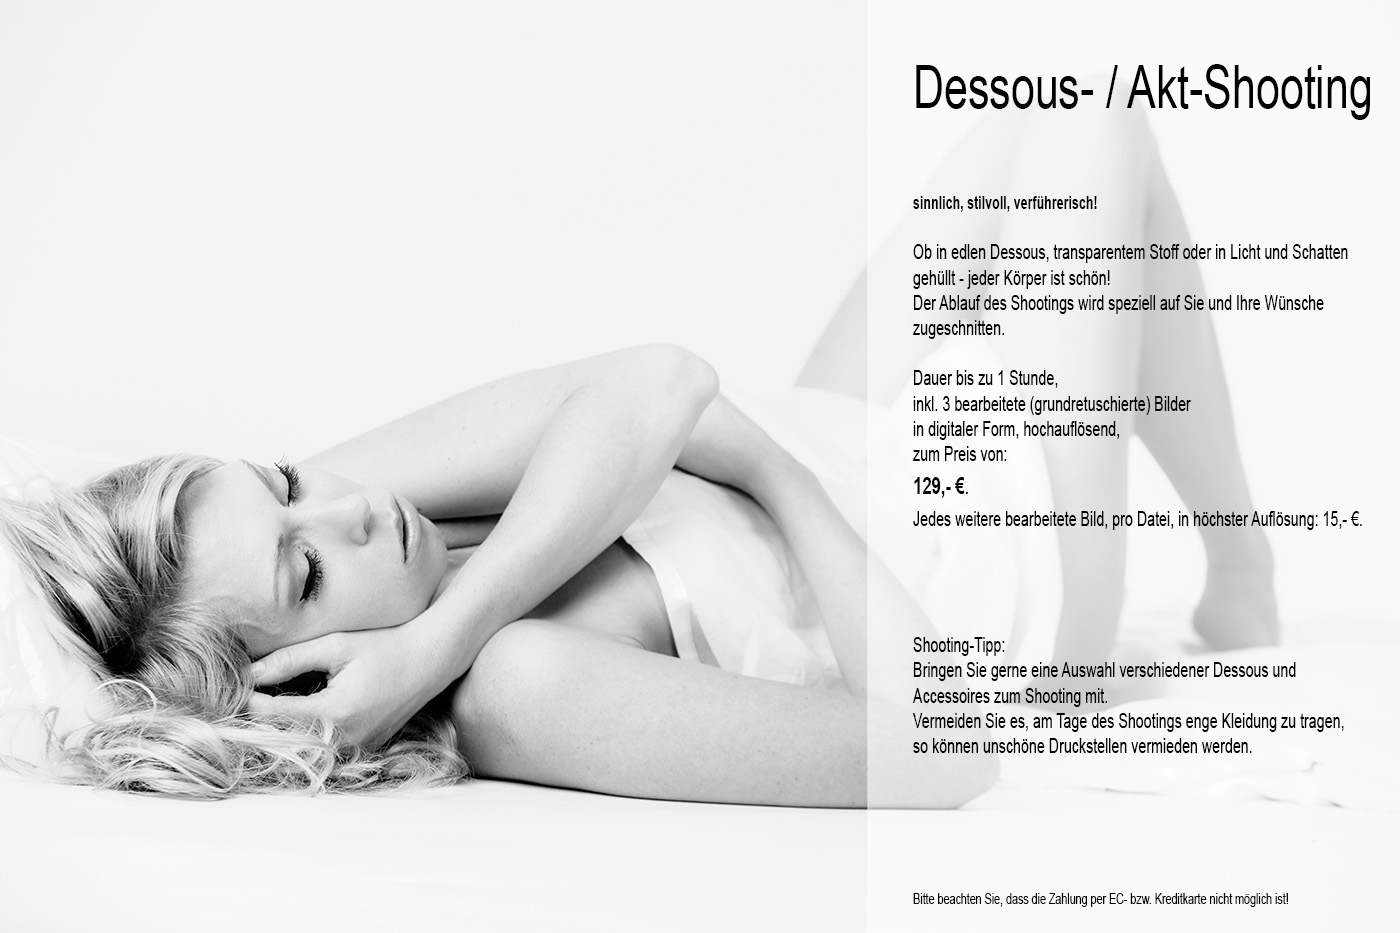 Dessous-Akt-Shooting-Angebot